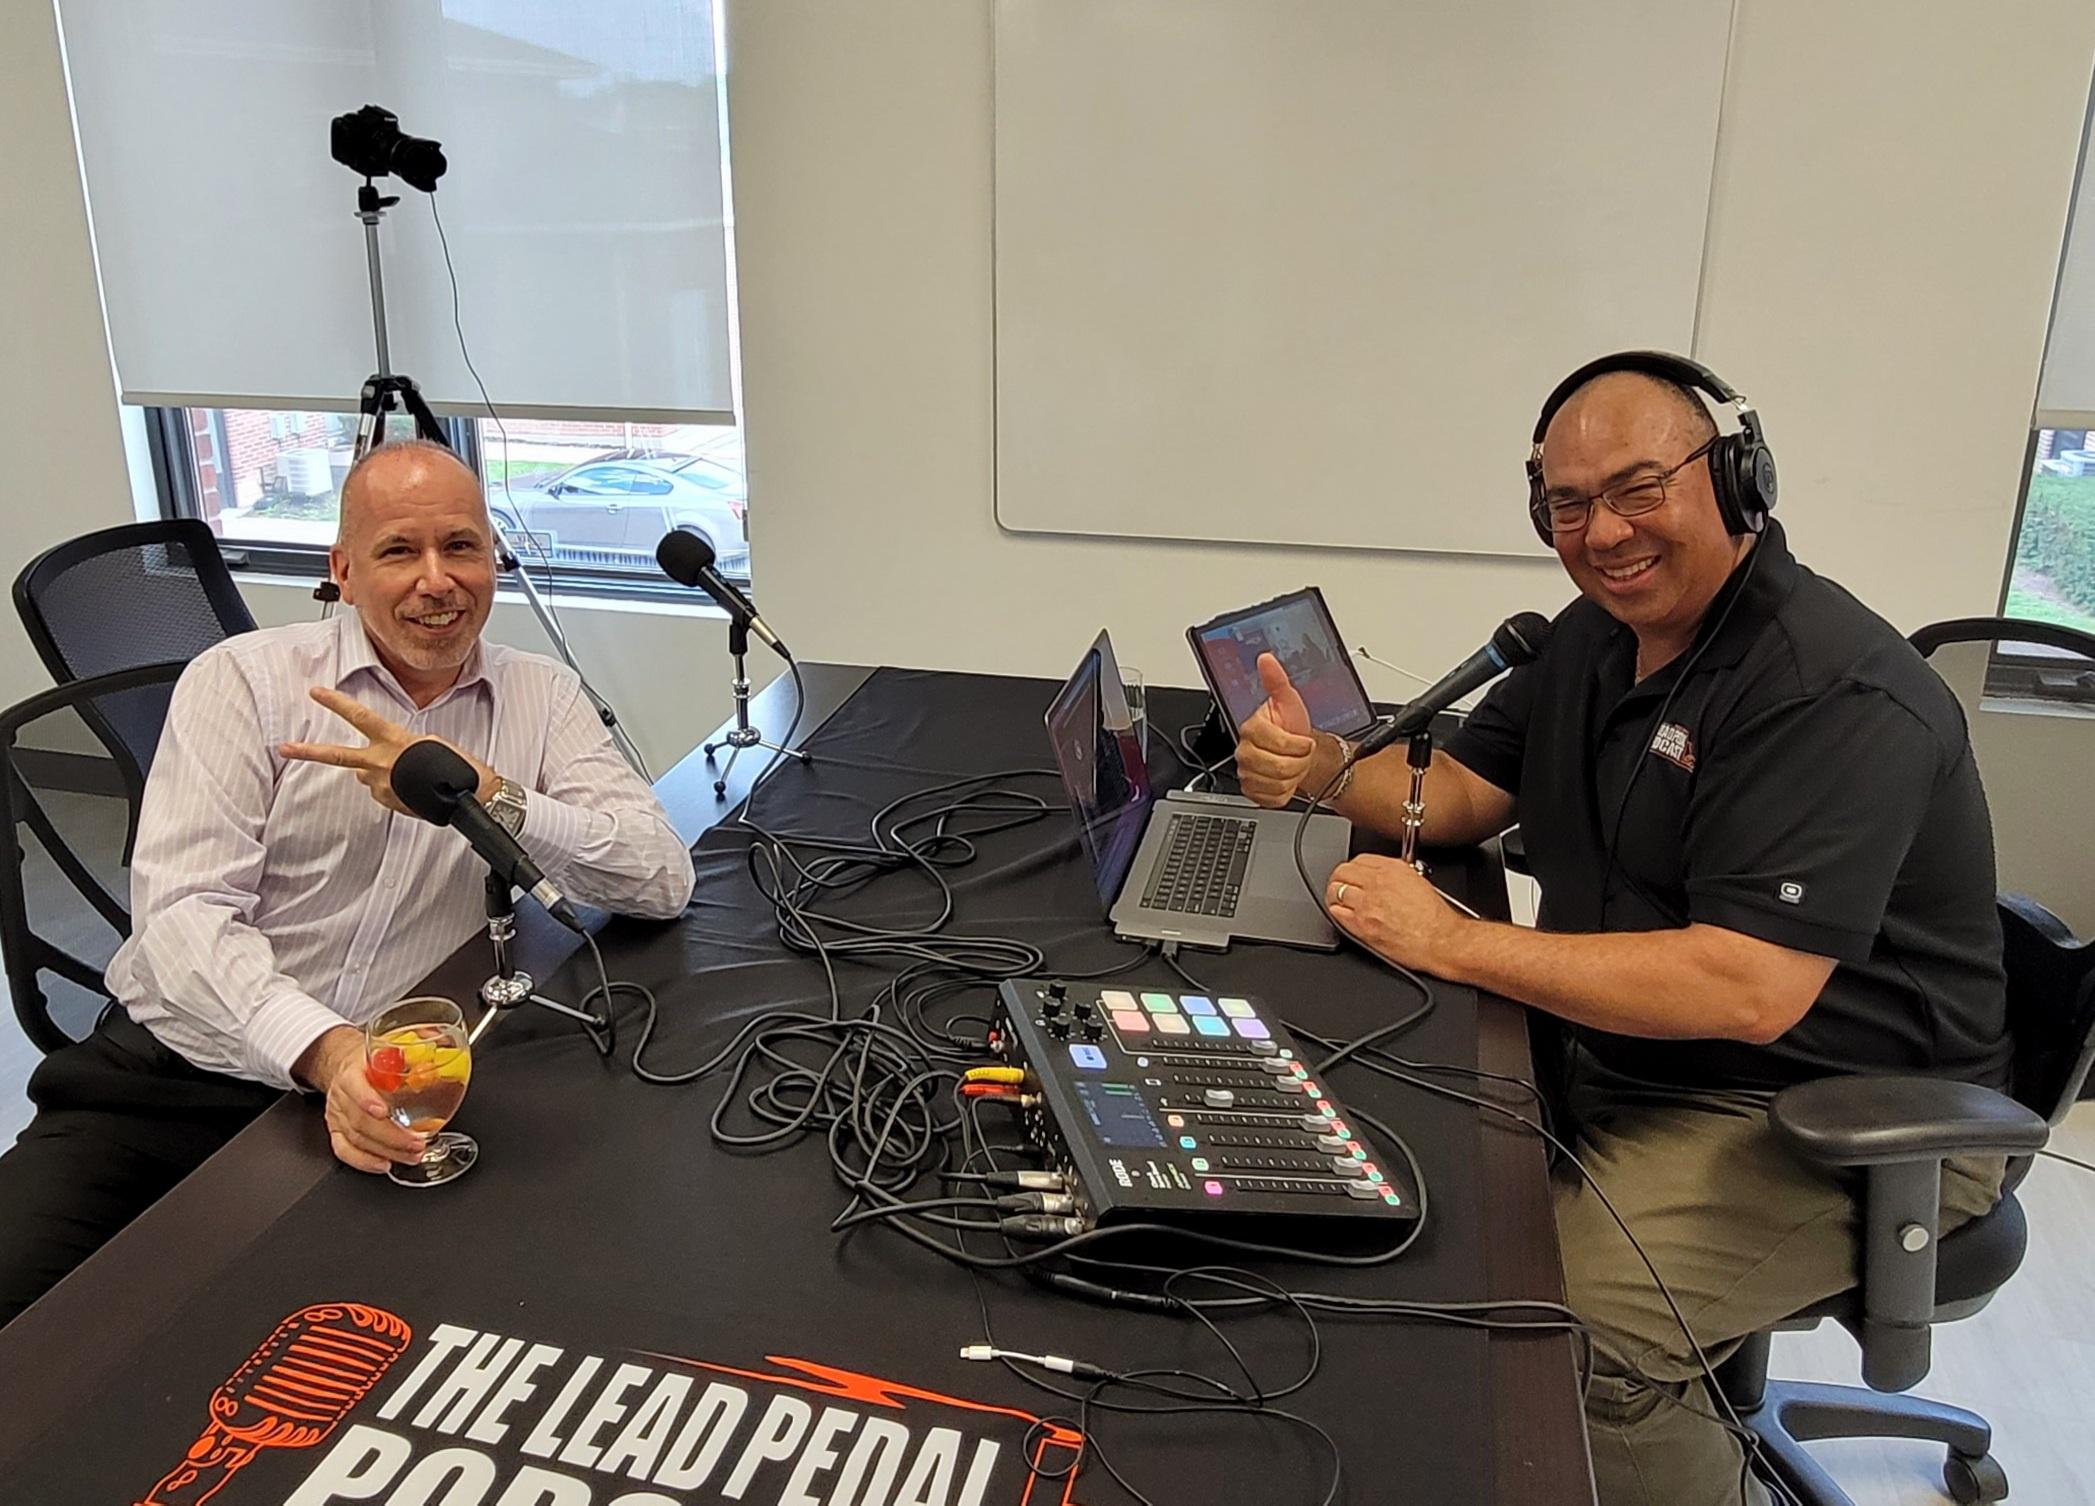 On Air with paul